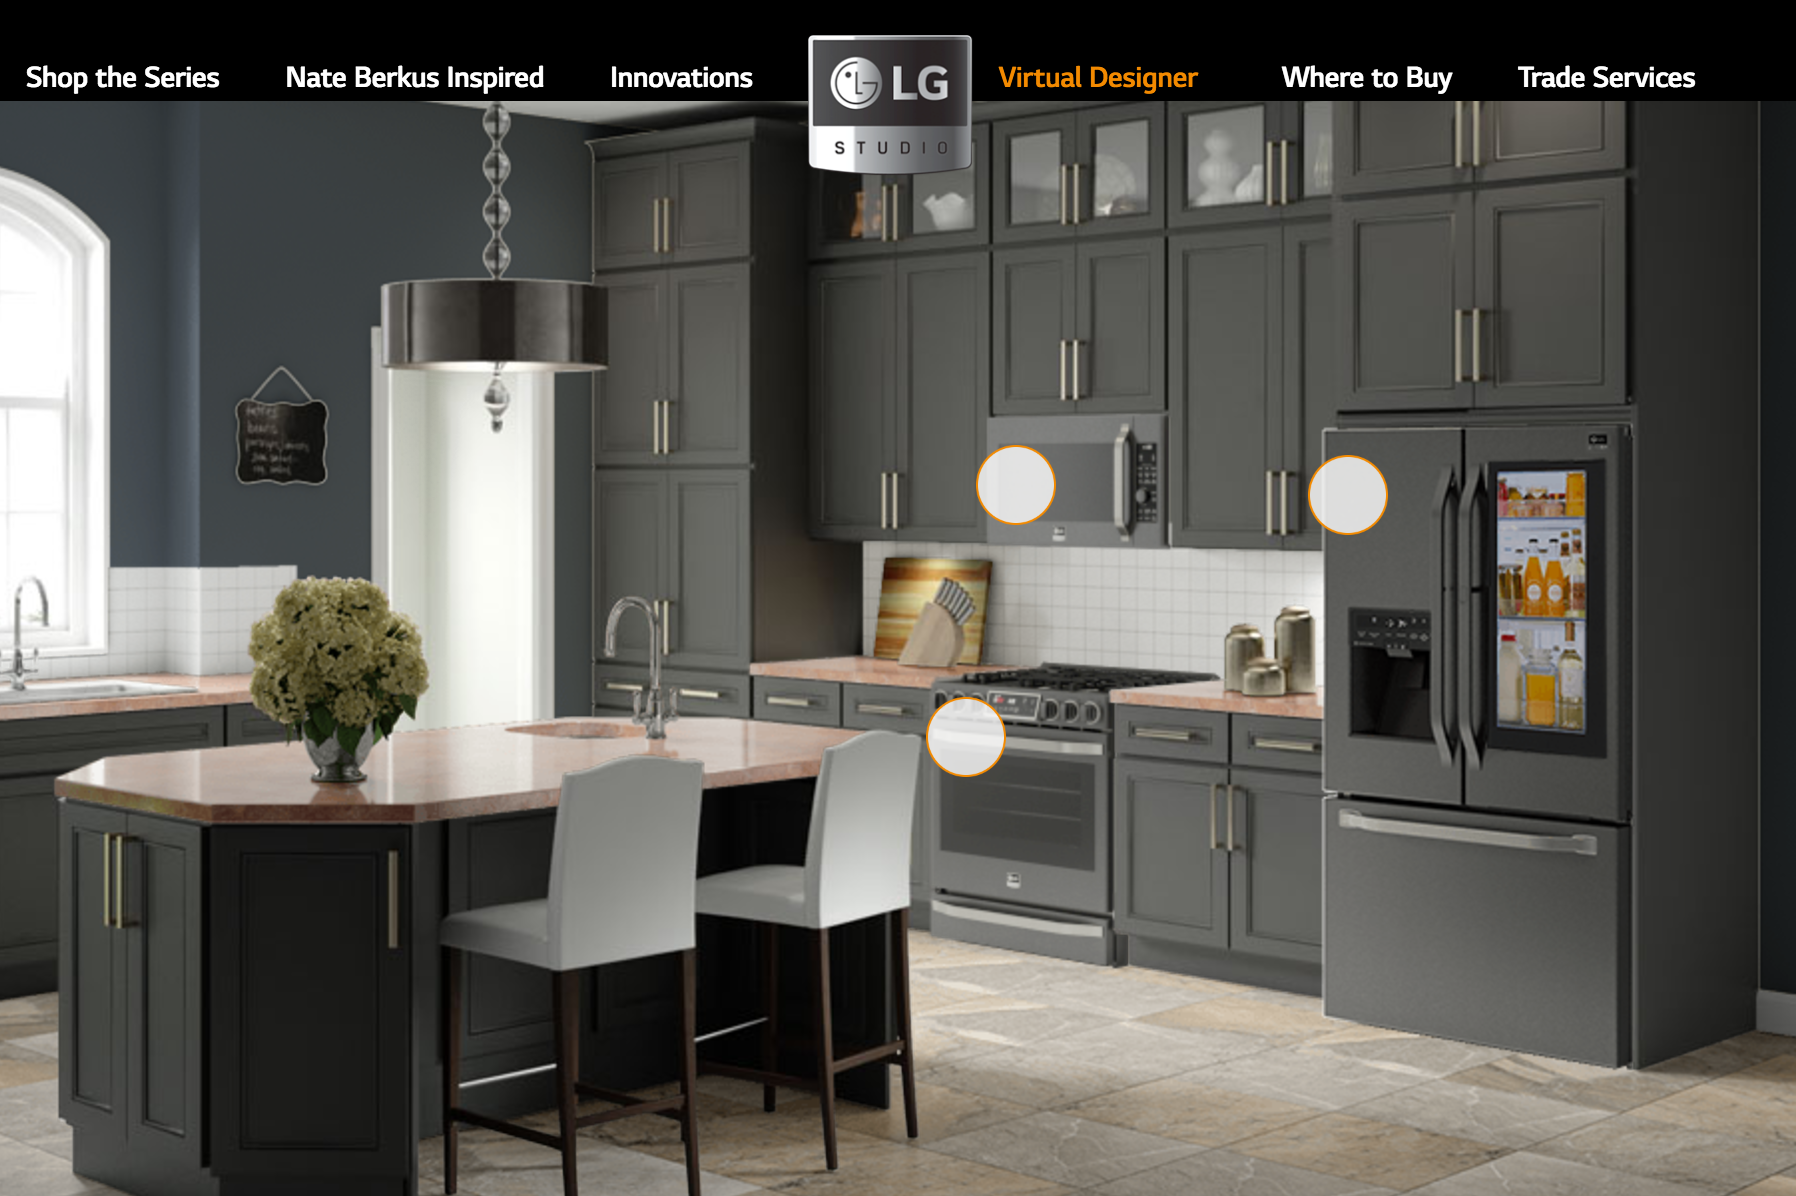 lg wants you to build your kitchen around its appliances with its